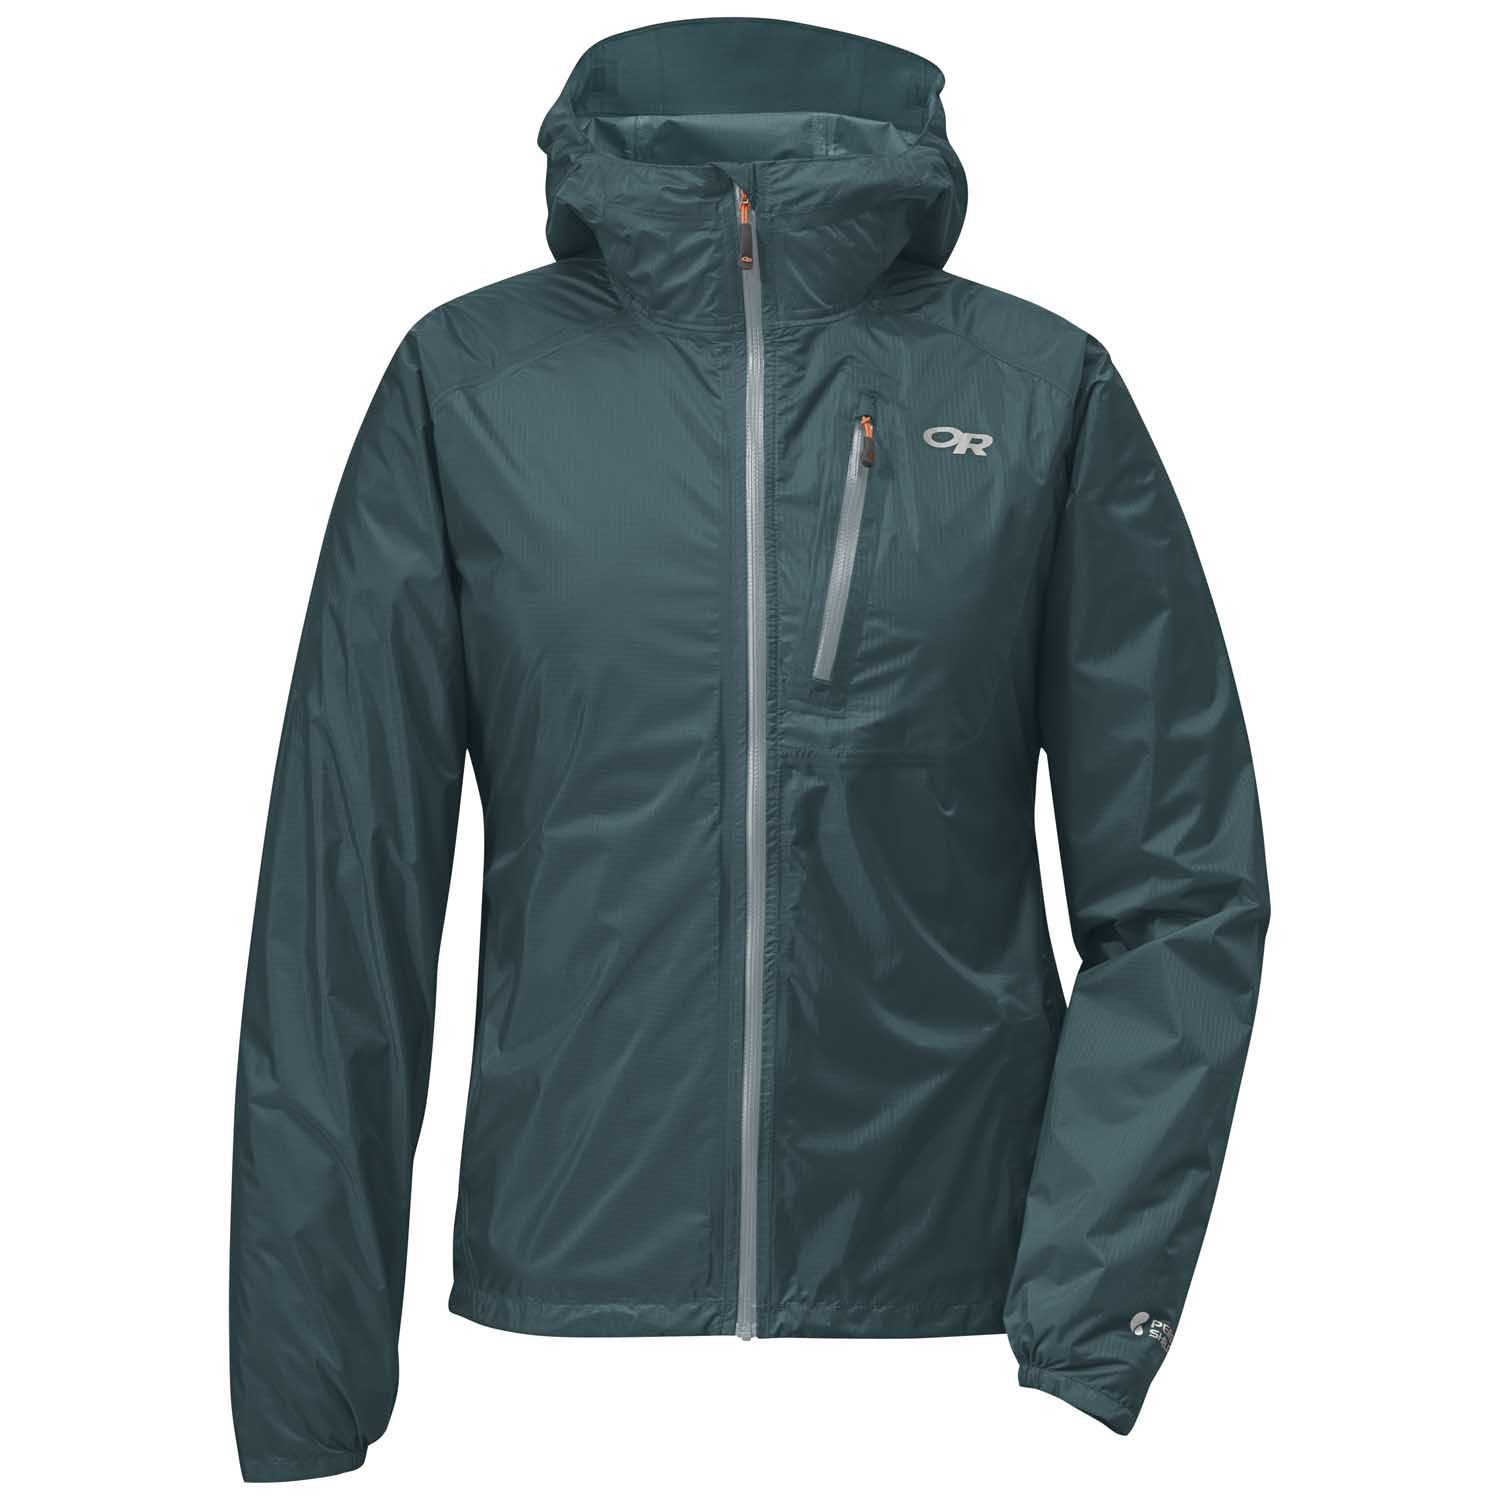 OR Helium II Women's Jacket